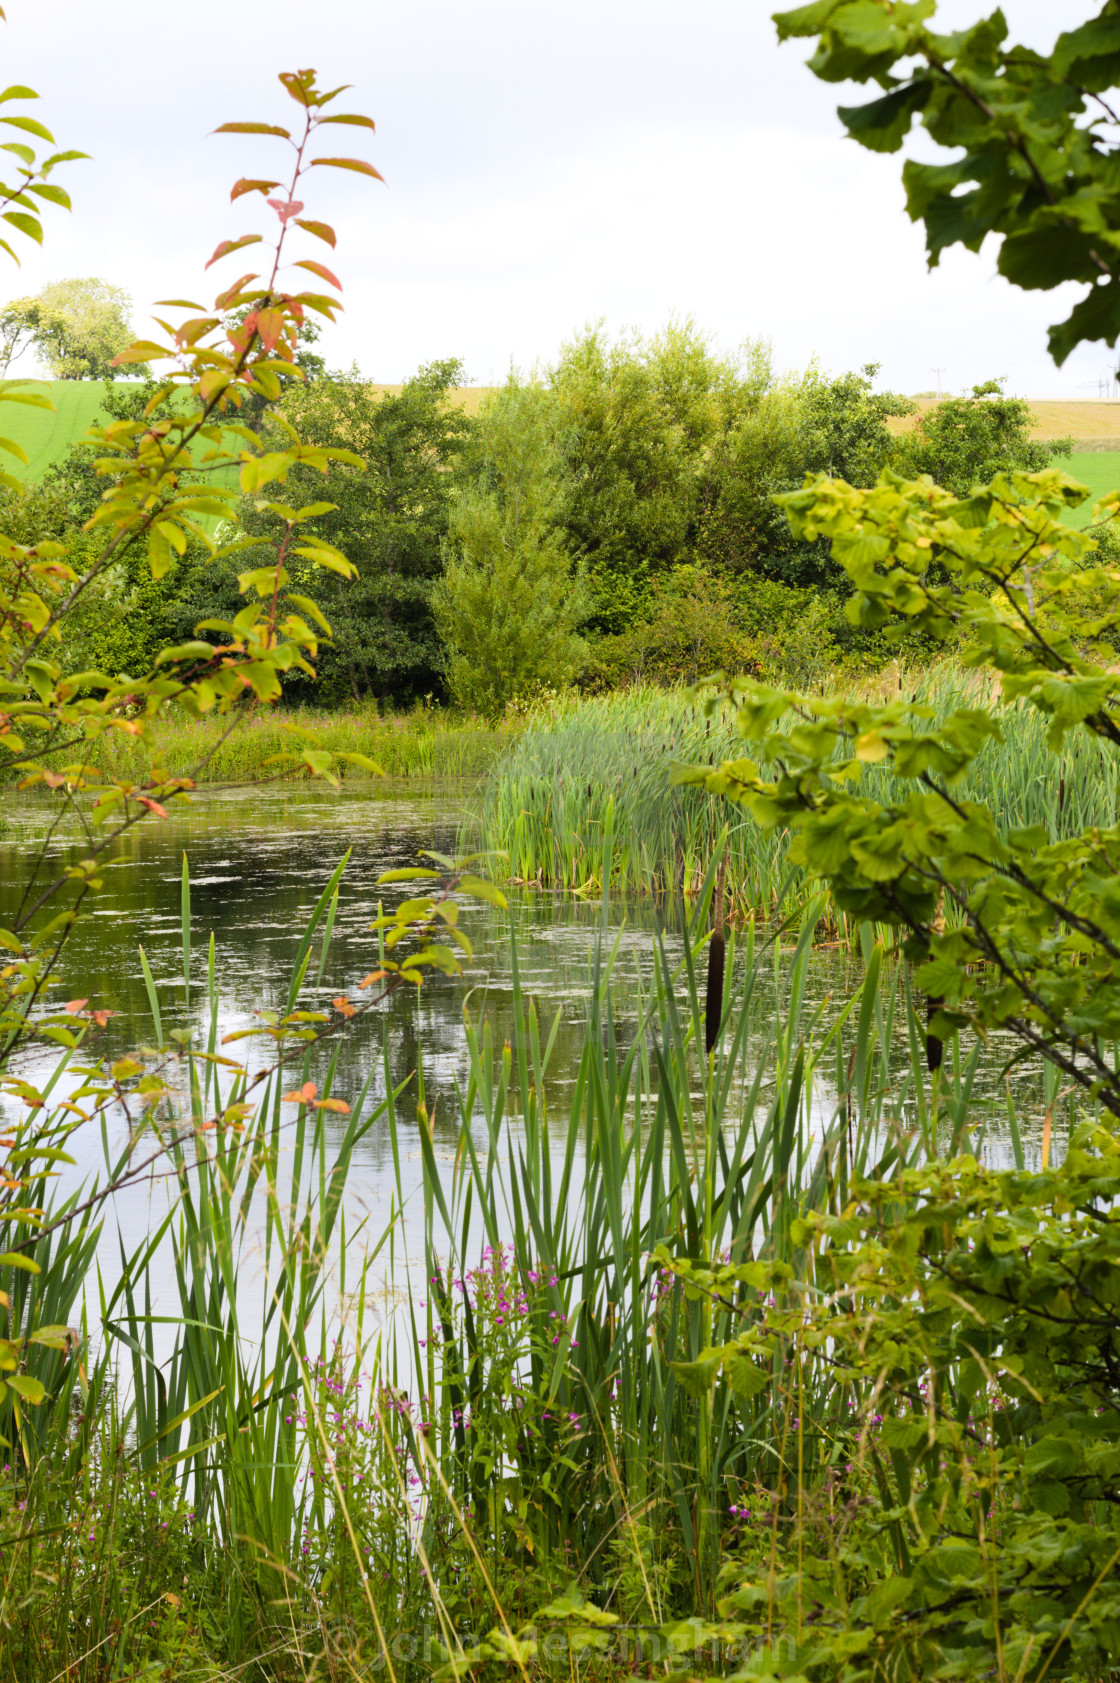 """""""Pond surrounded by green trees, grass and reeds"""" stock image"""